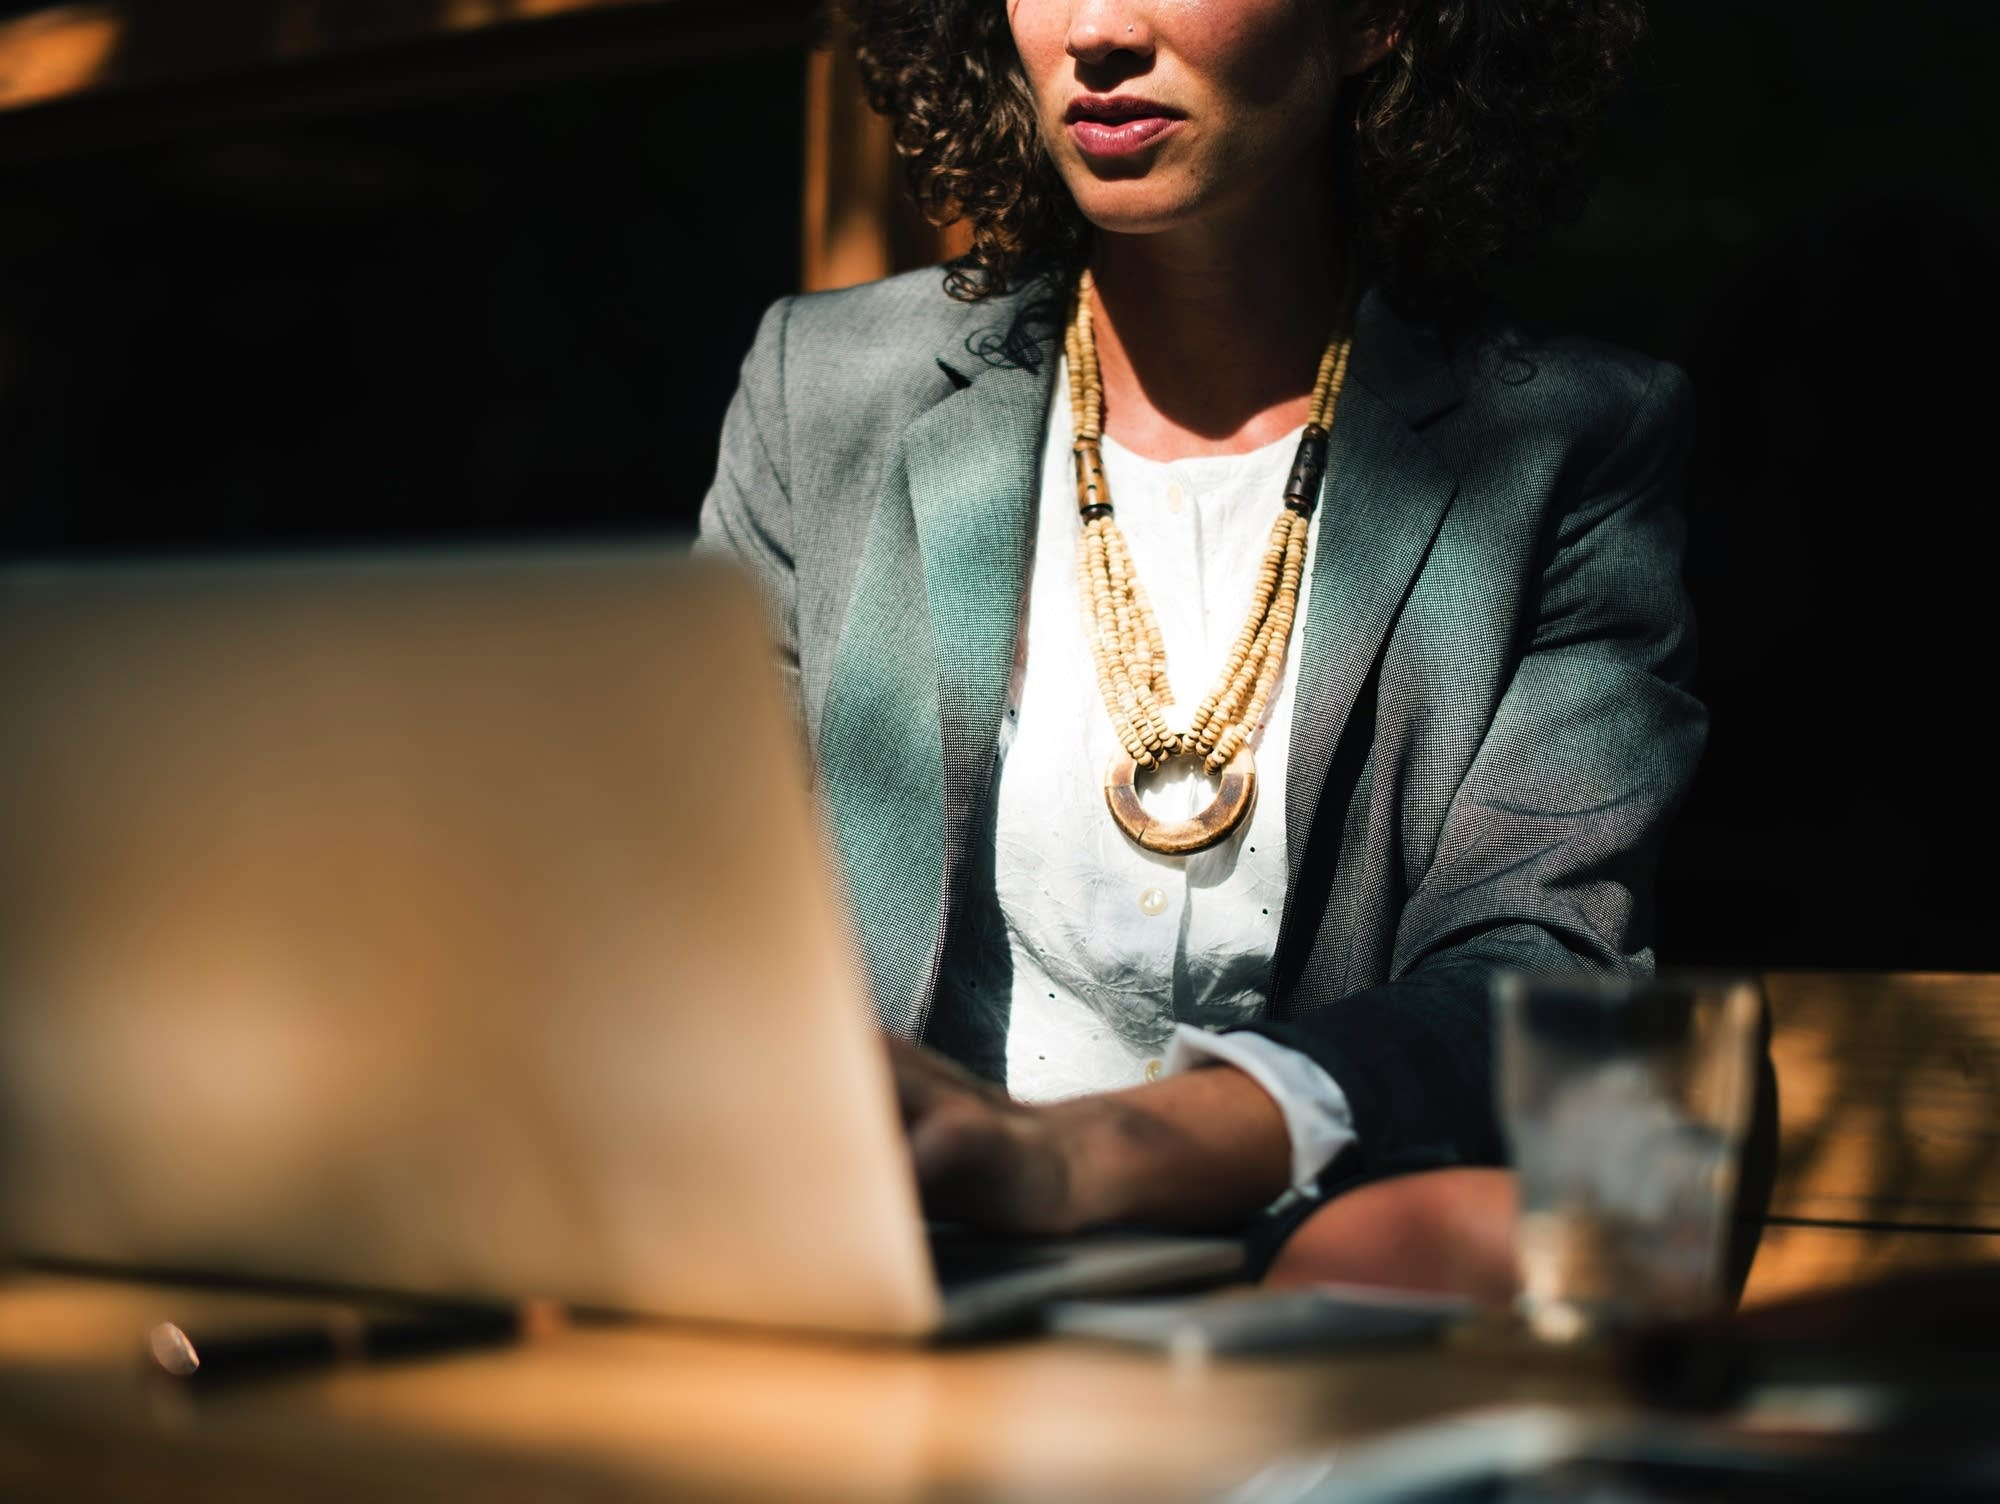 Minnesota's full-time working women saw a nearly $1,500 bump in real earnings in 2016 over 2015. Photo by rawpixel.com on Unsplash